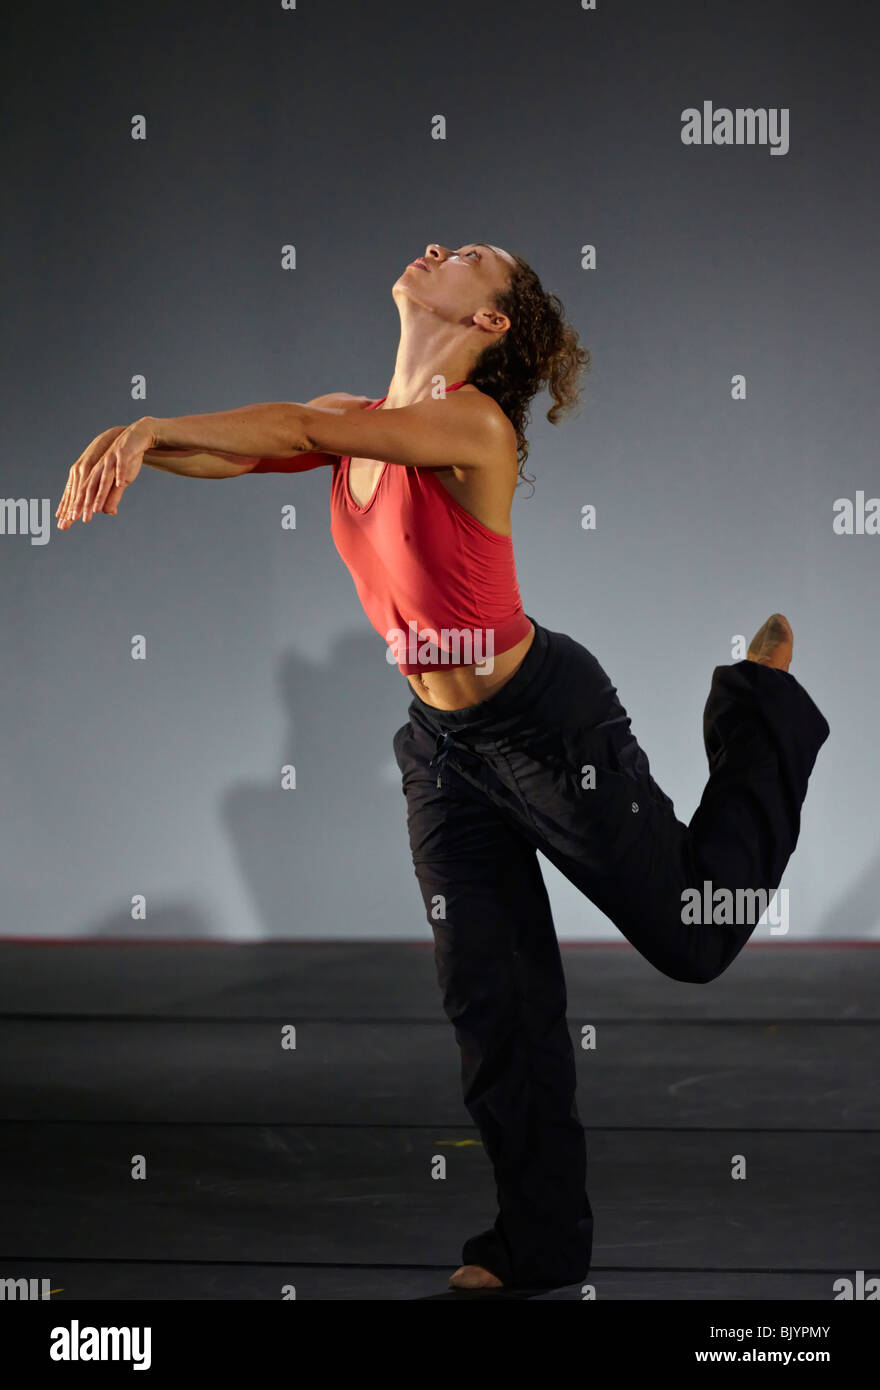 Female dancer of a modern dance performing group at a stage rehearsal. Thailand S. E. Asia Stock Photo